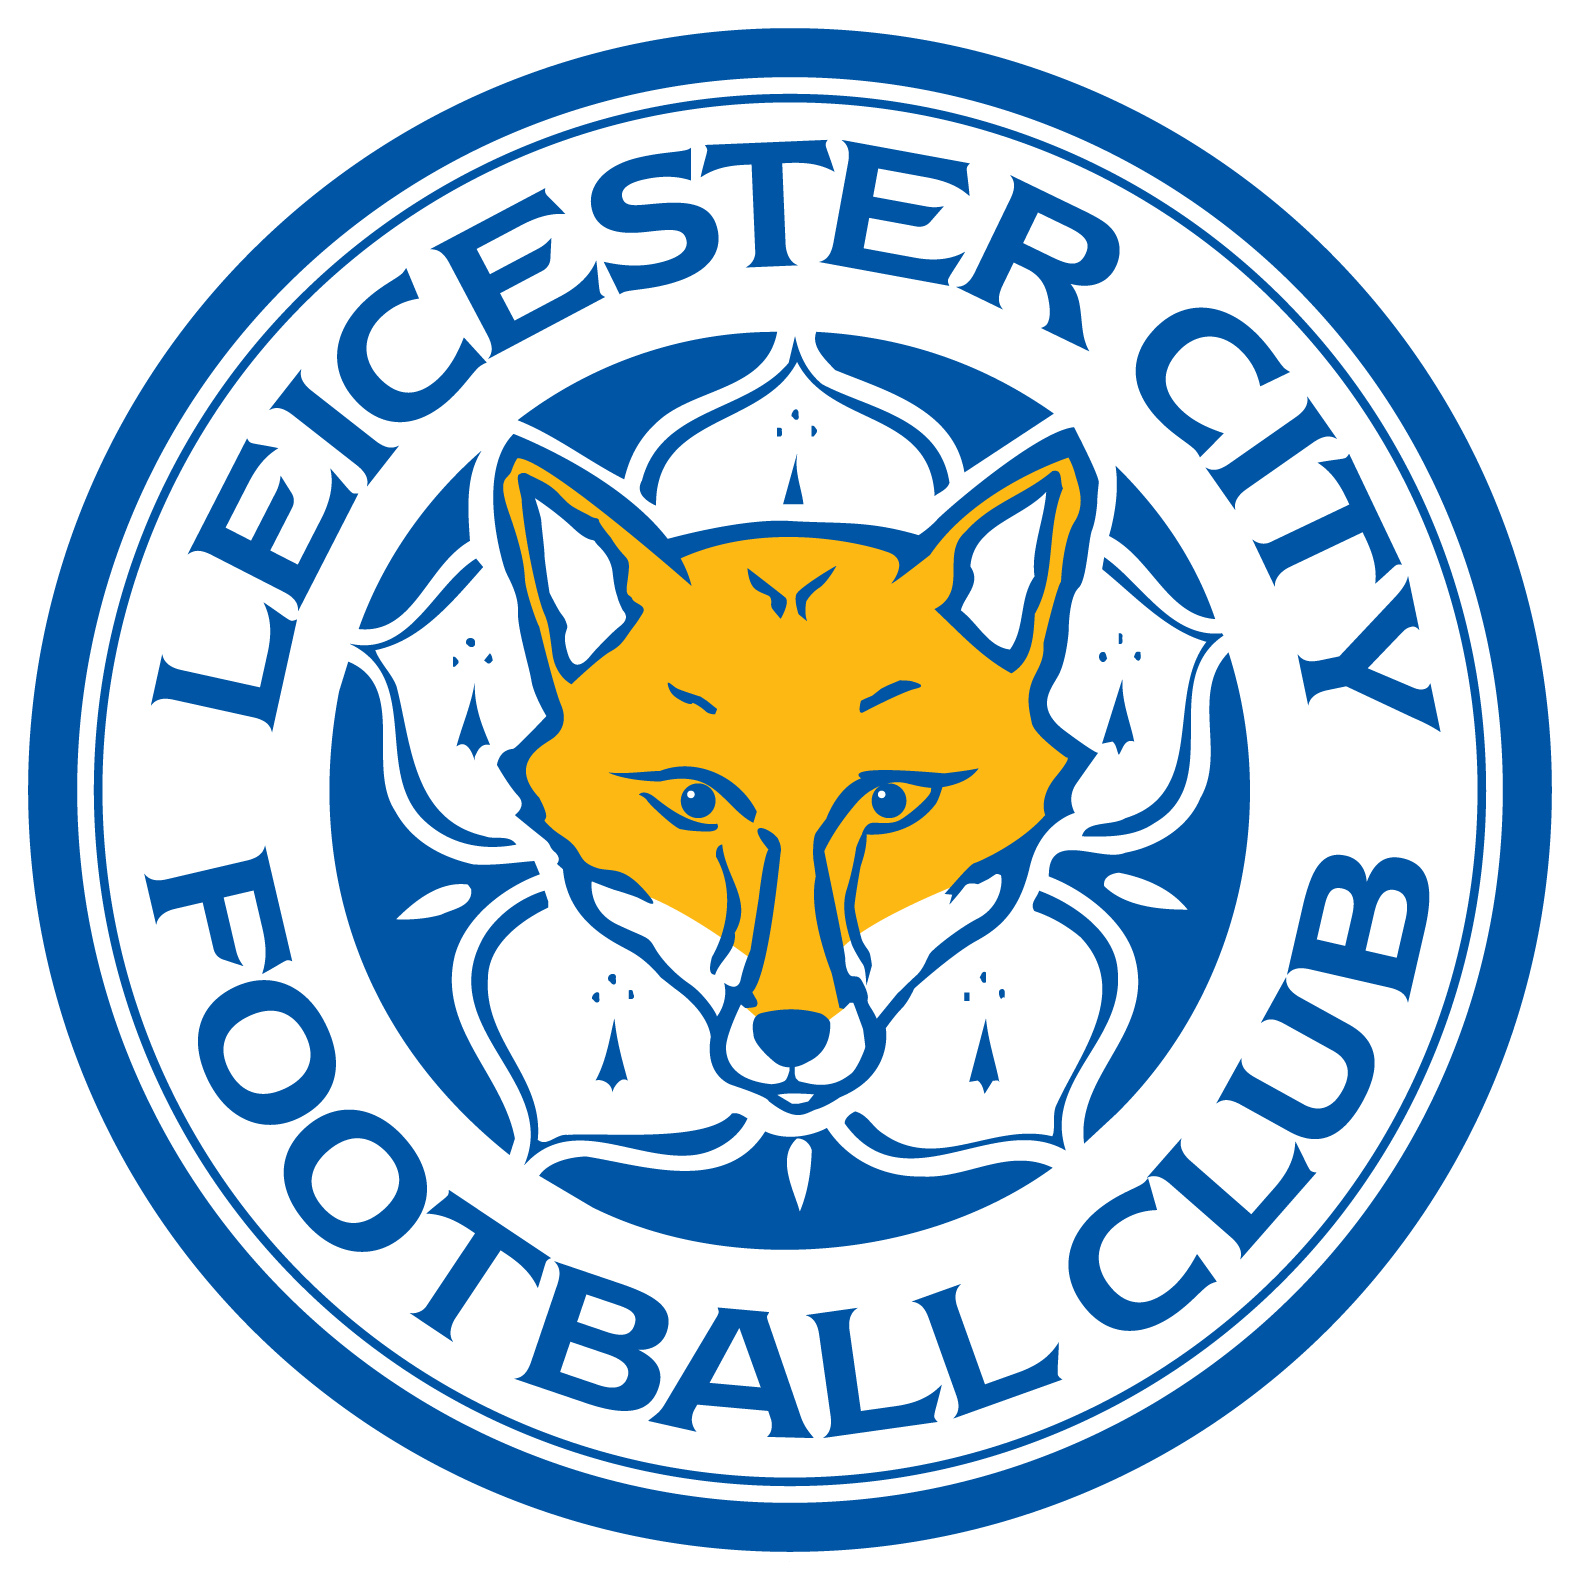 leicster football